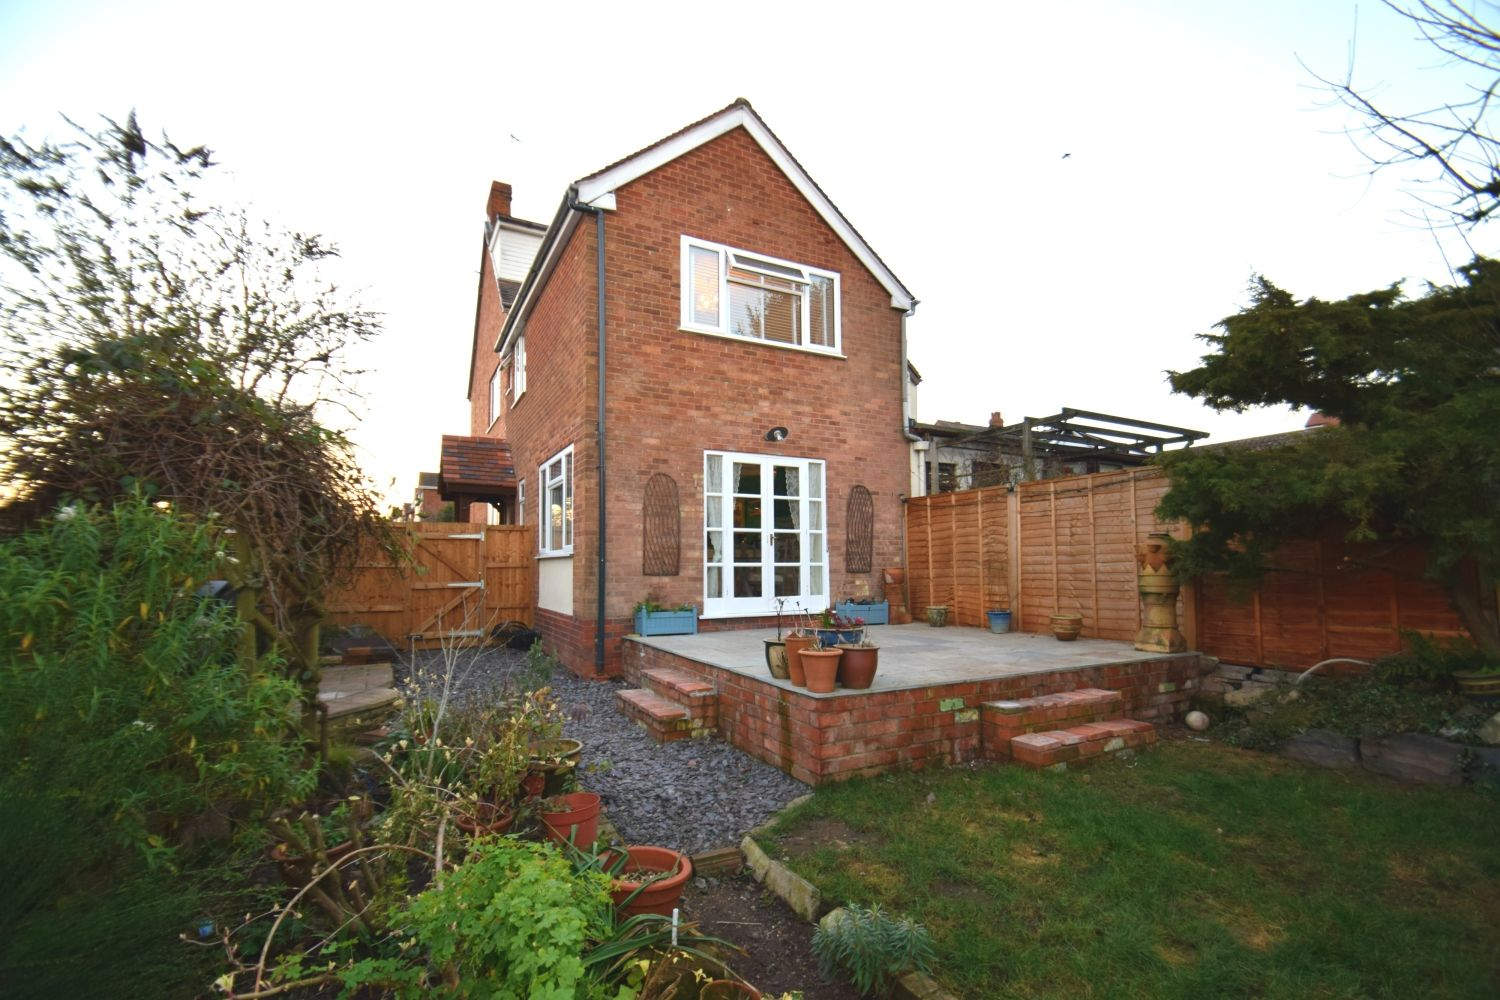 4 bed semi-detached for sale in Upland Grove, Bromsgrove, B61  - Property Image 29